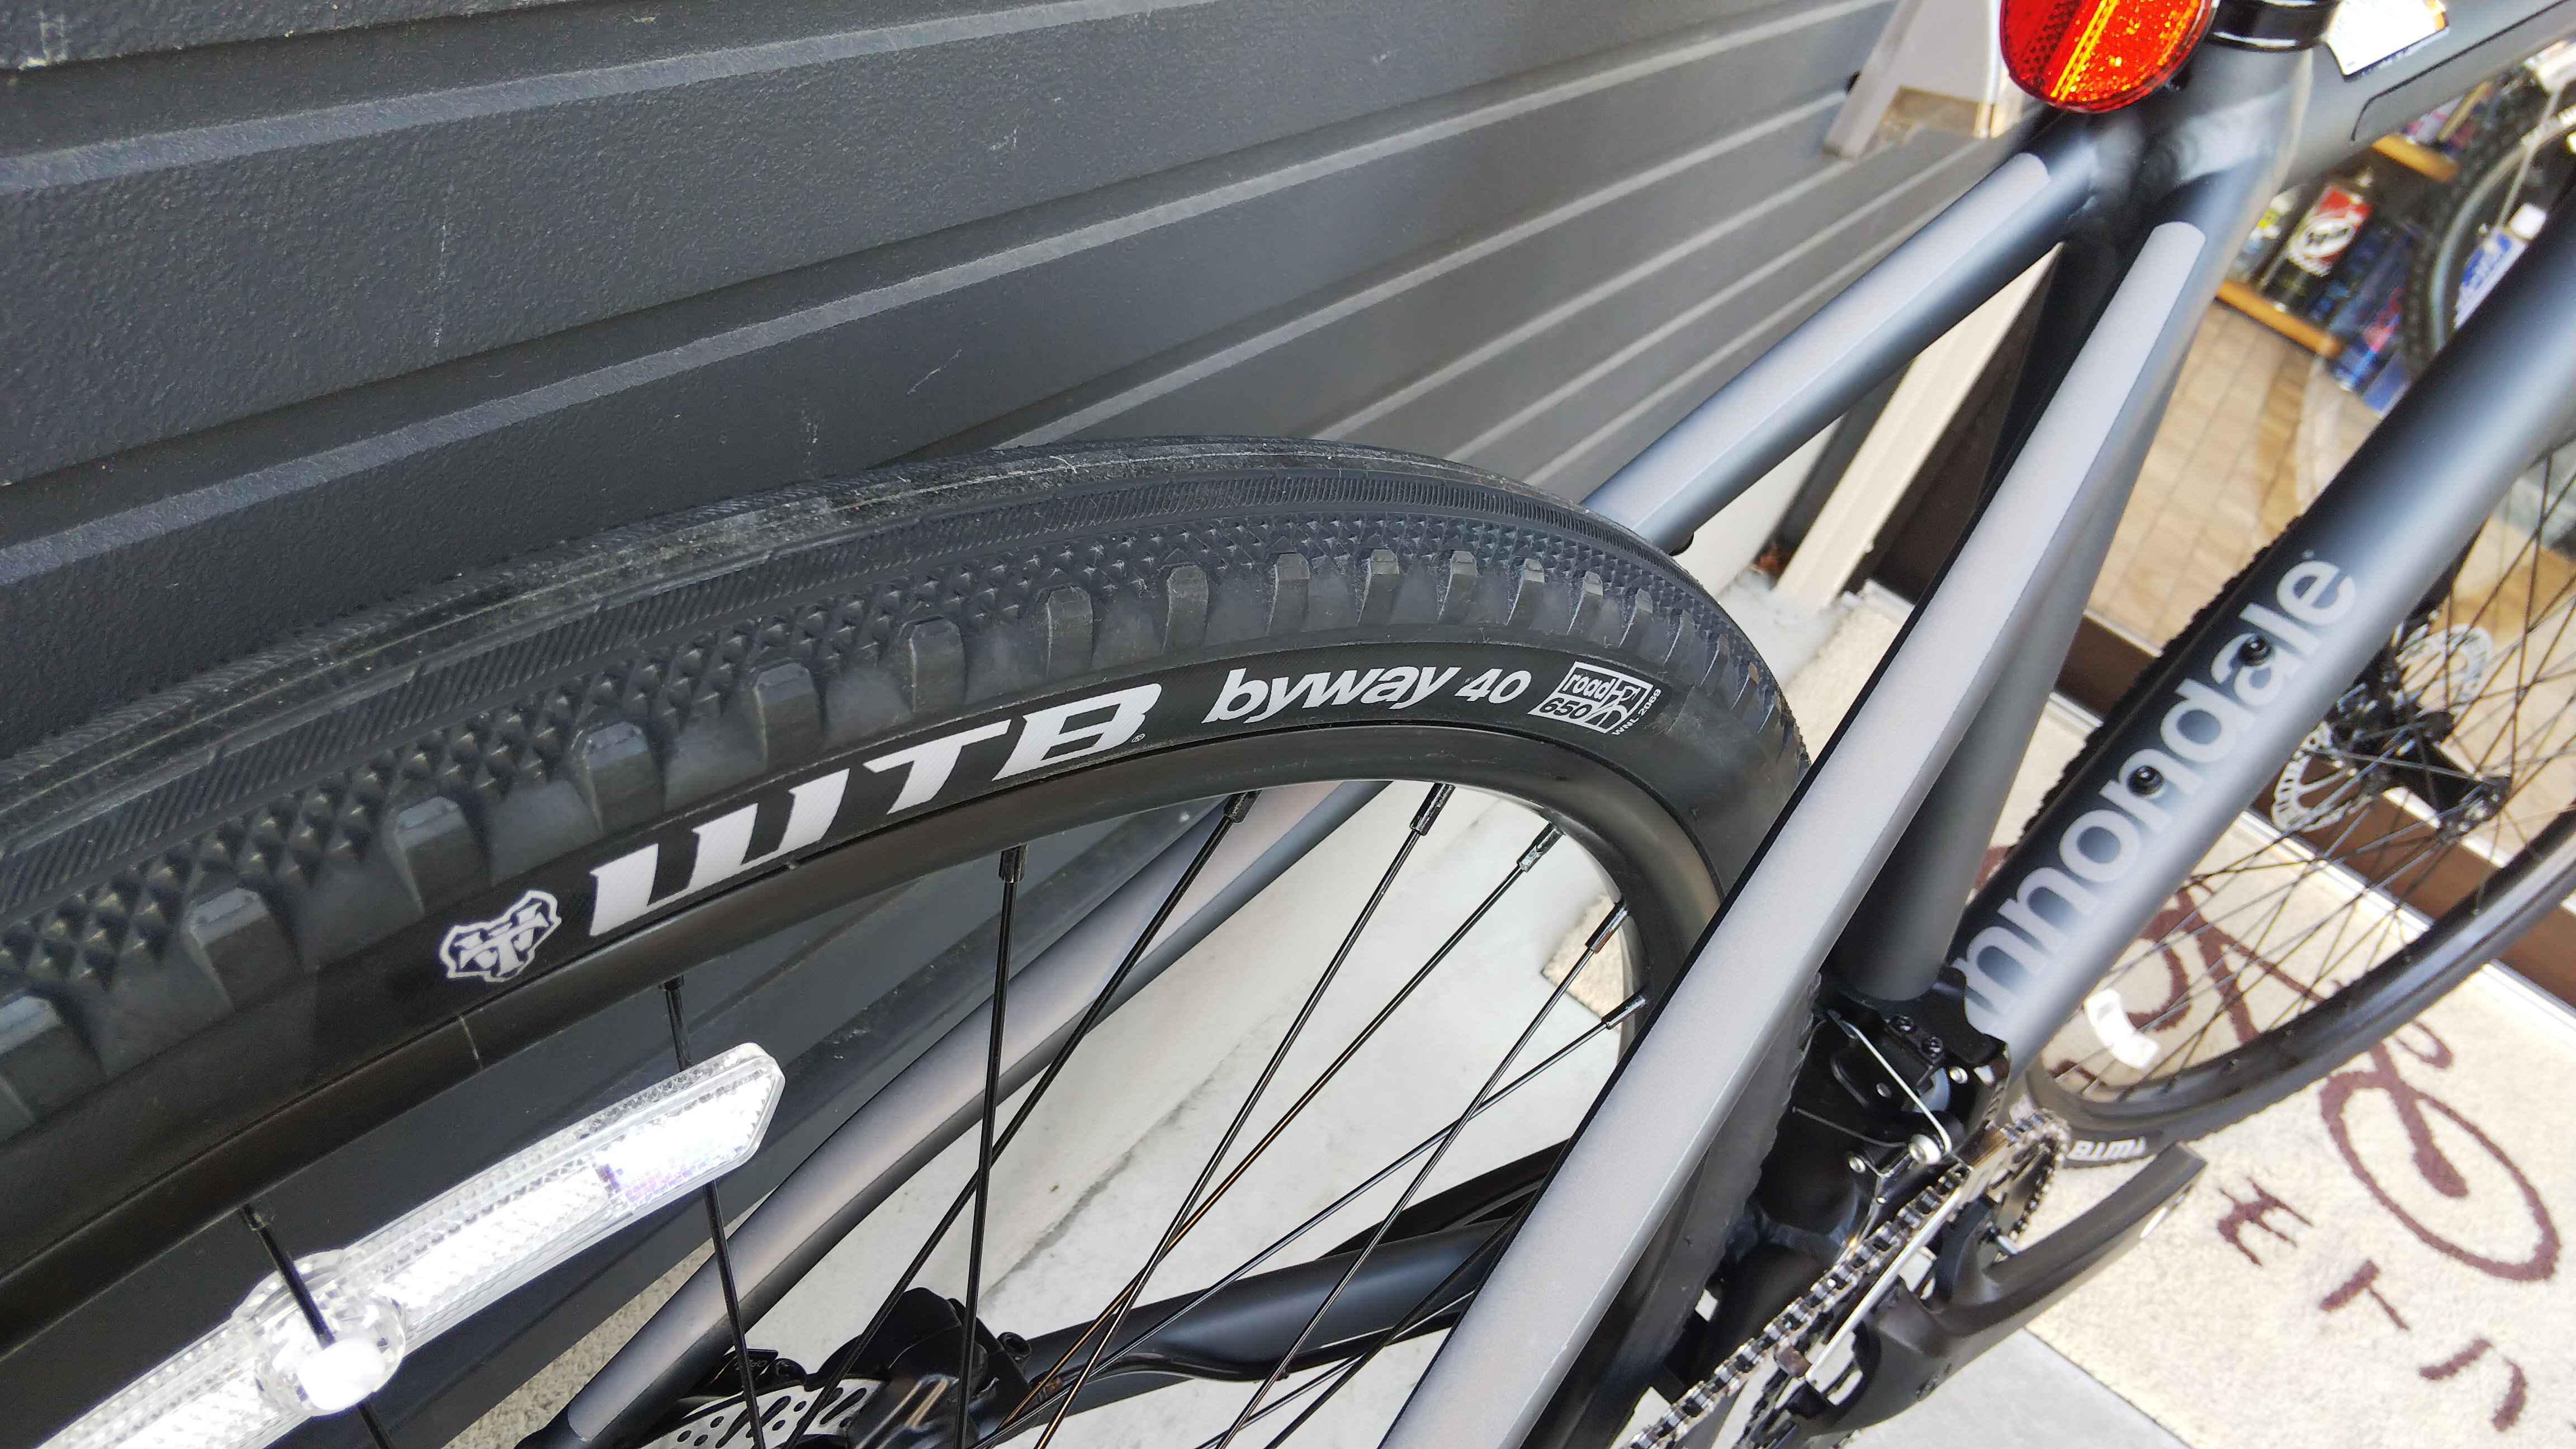 http://www.cyclomotohara.com/products/images/DSC_2400.JPG